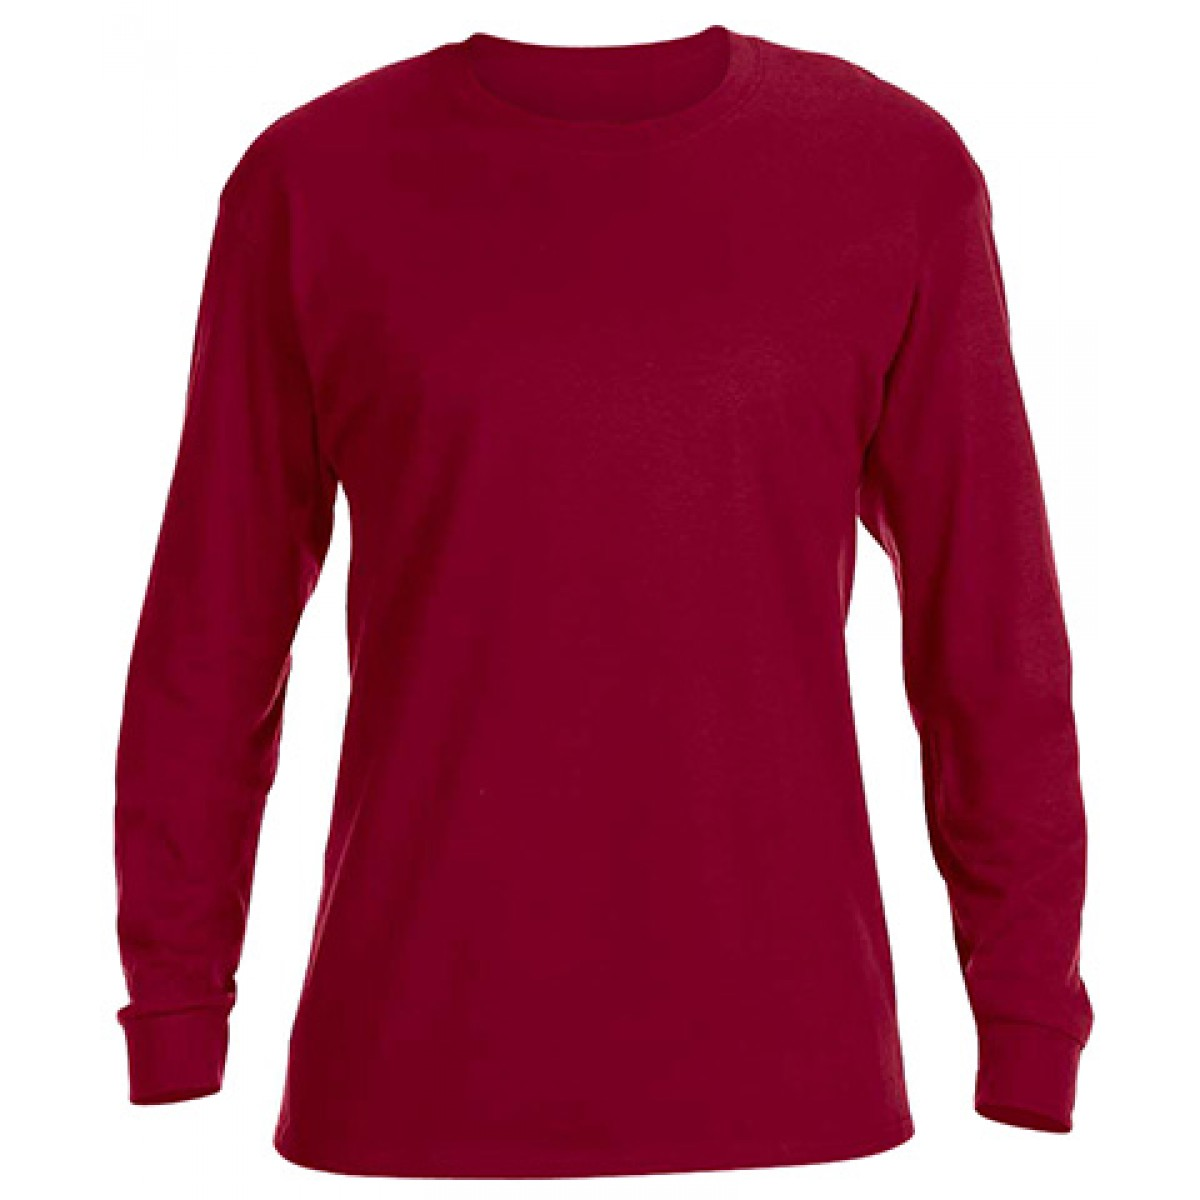 Basic Long Sleeve Crew Neck -Cardinal Red-YM